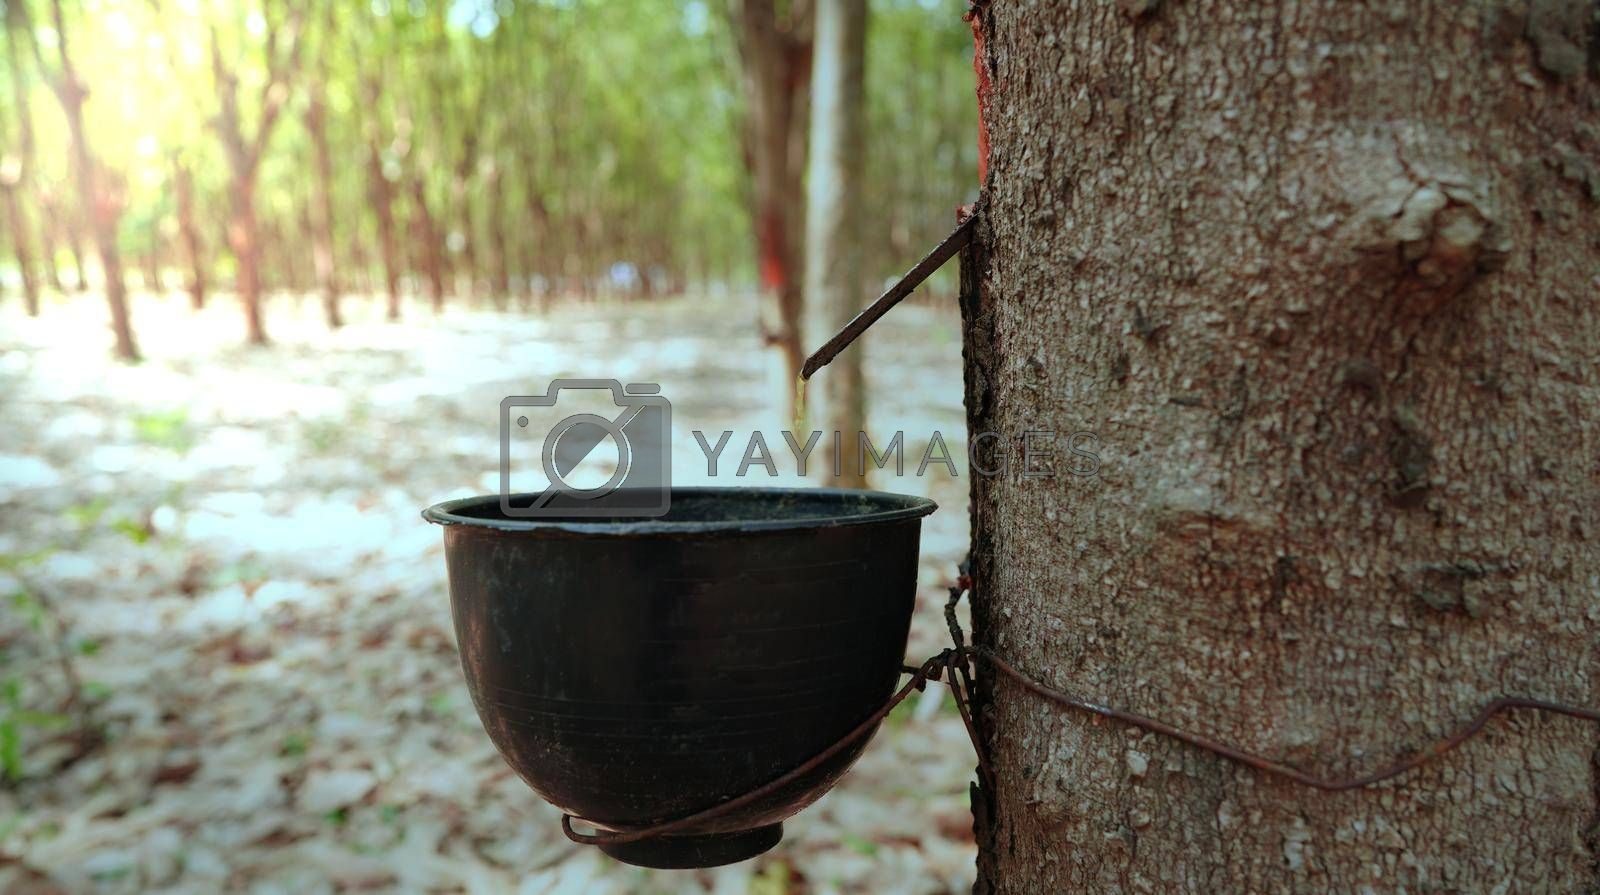 Harvesting in rubber plantations in the Northeast of Thailand.